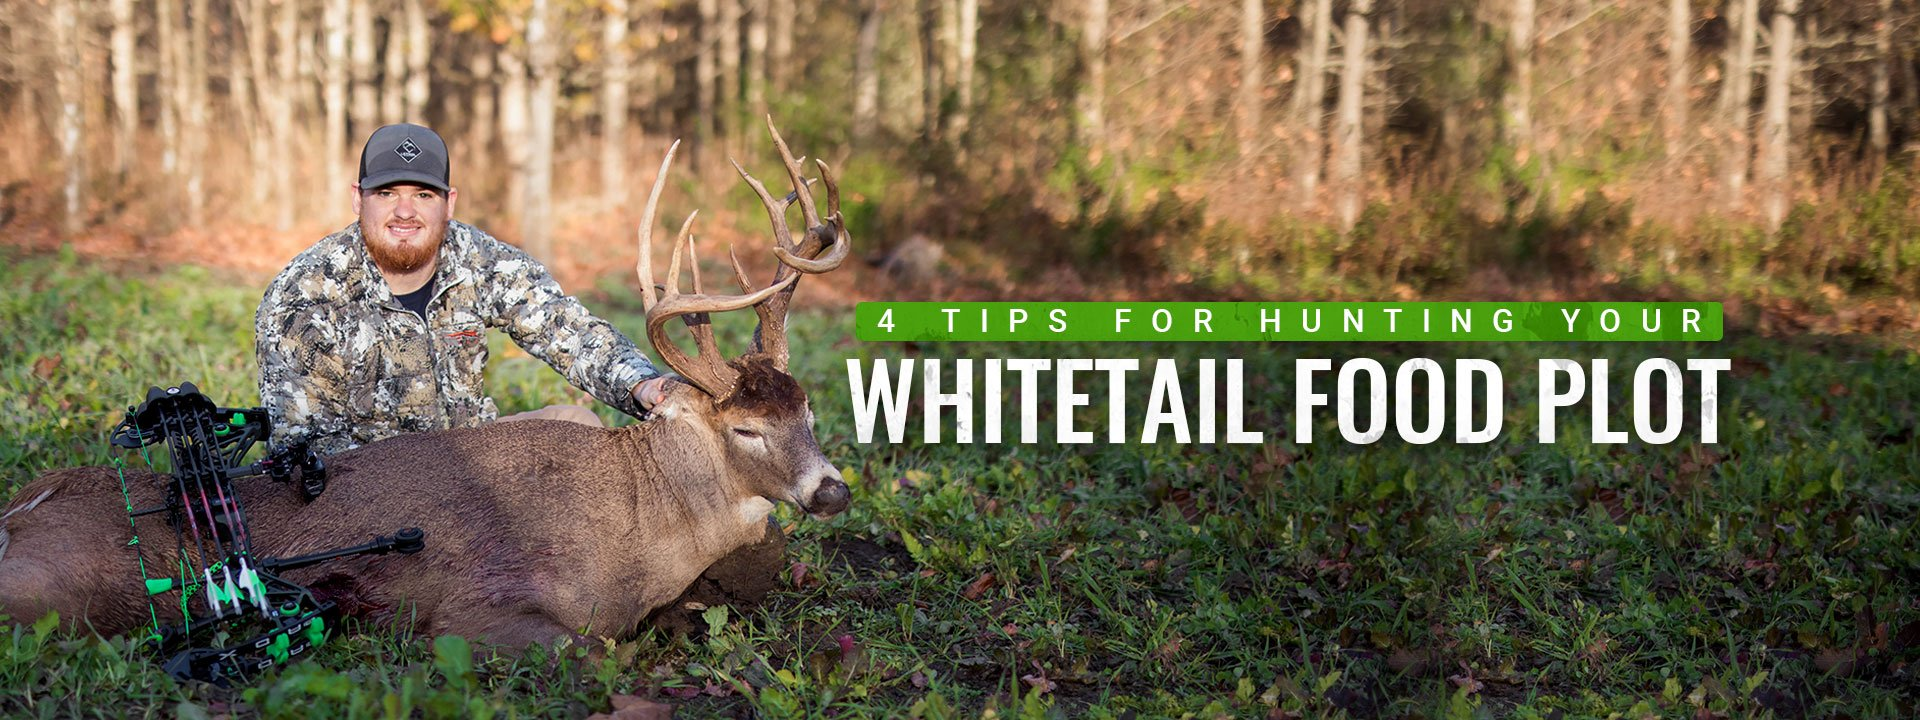 Hunting Your Whitetail Food Plot